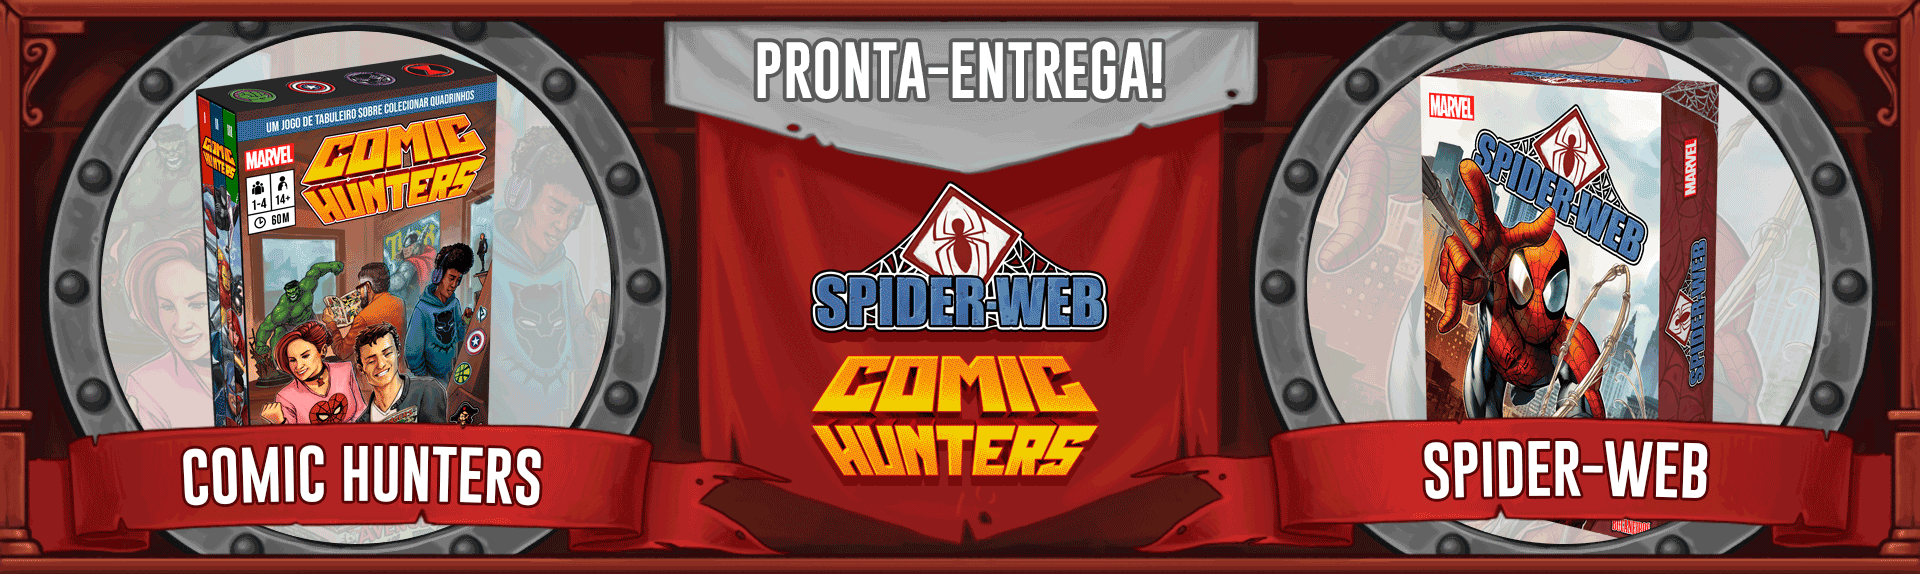 Comic Hunters e spider